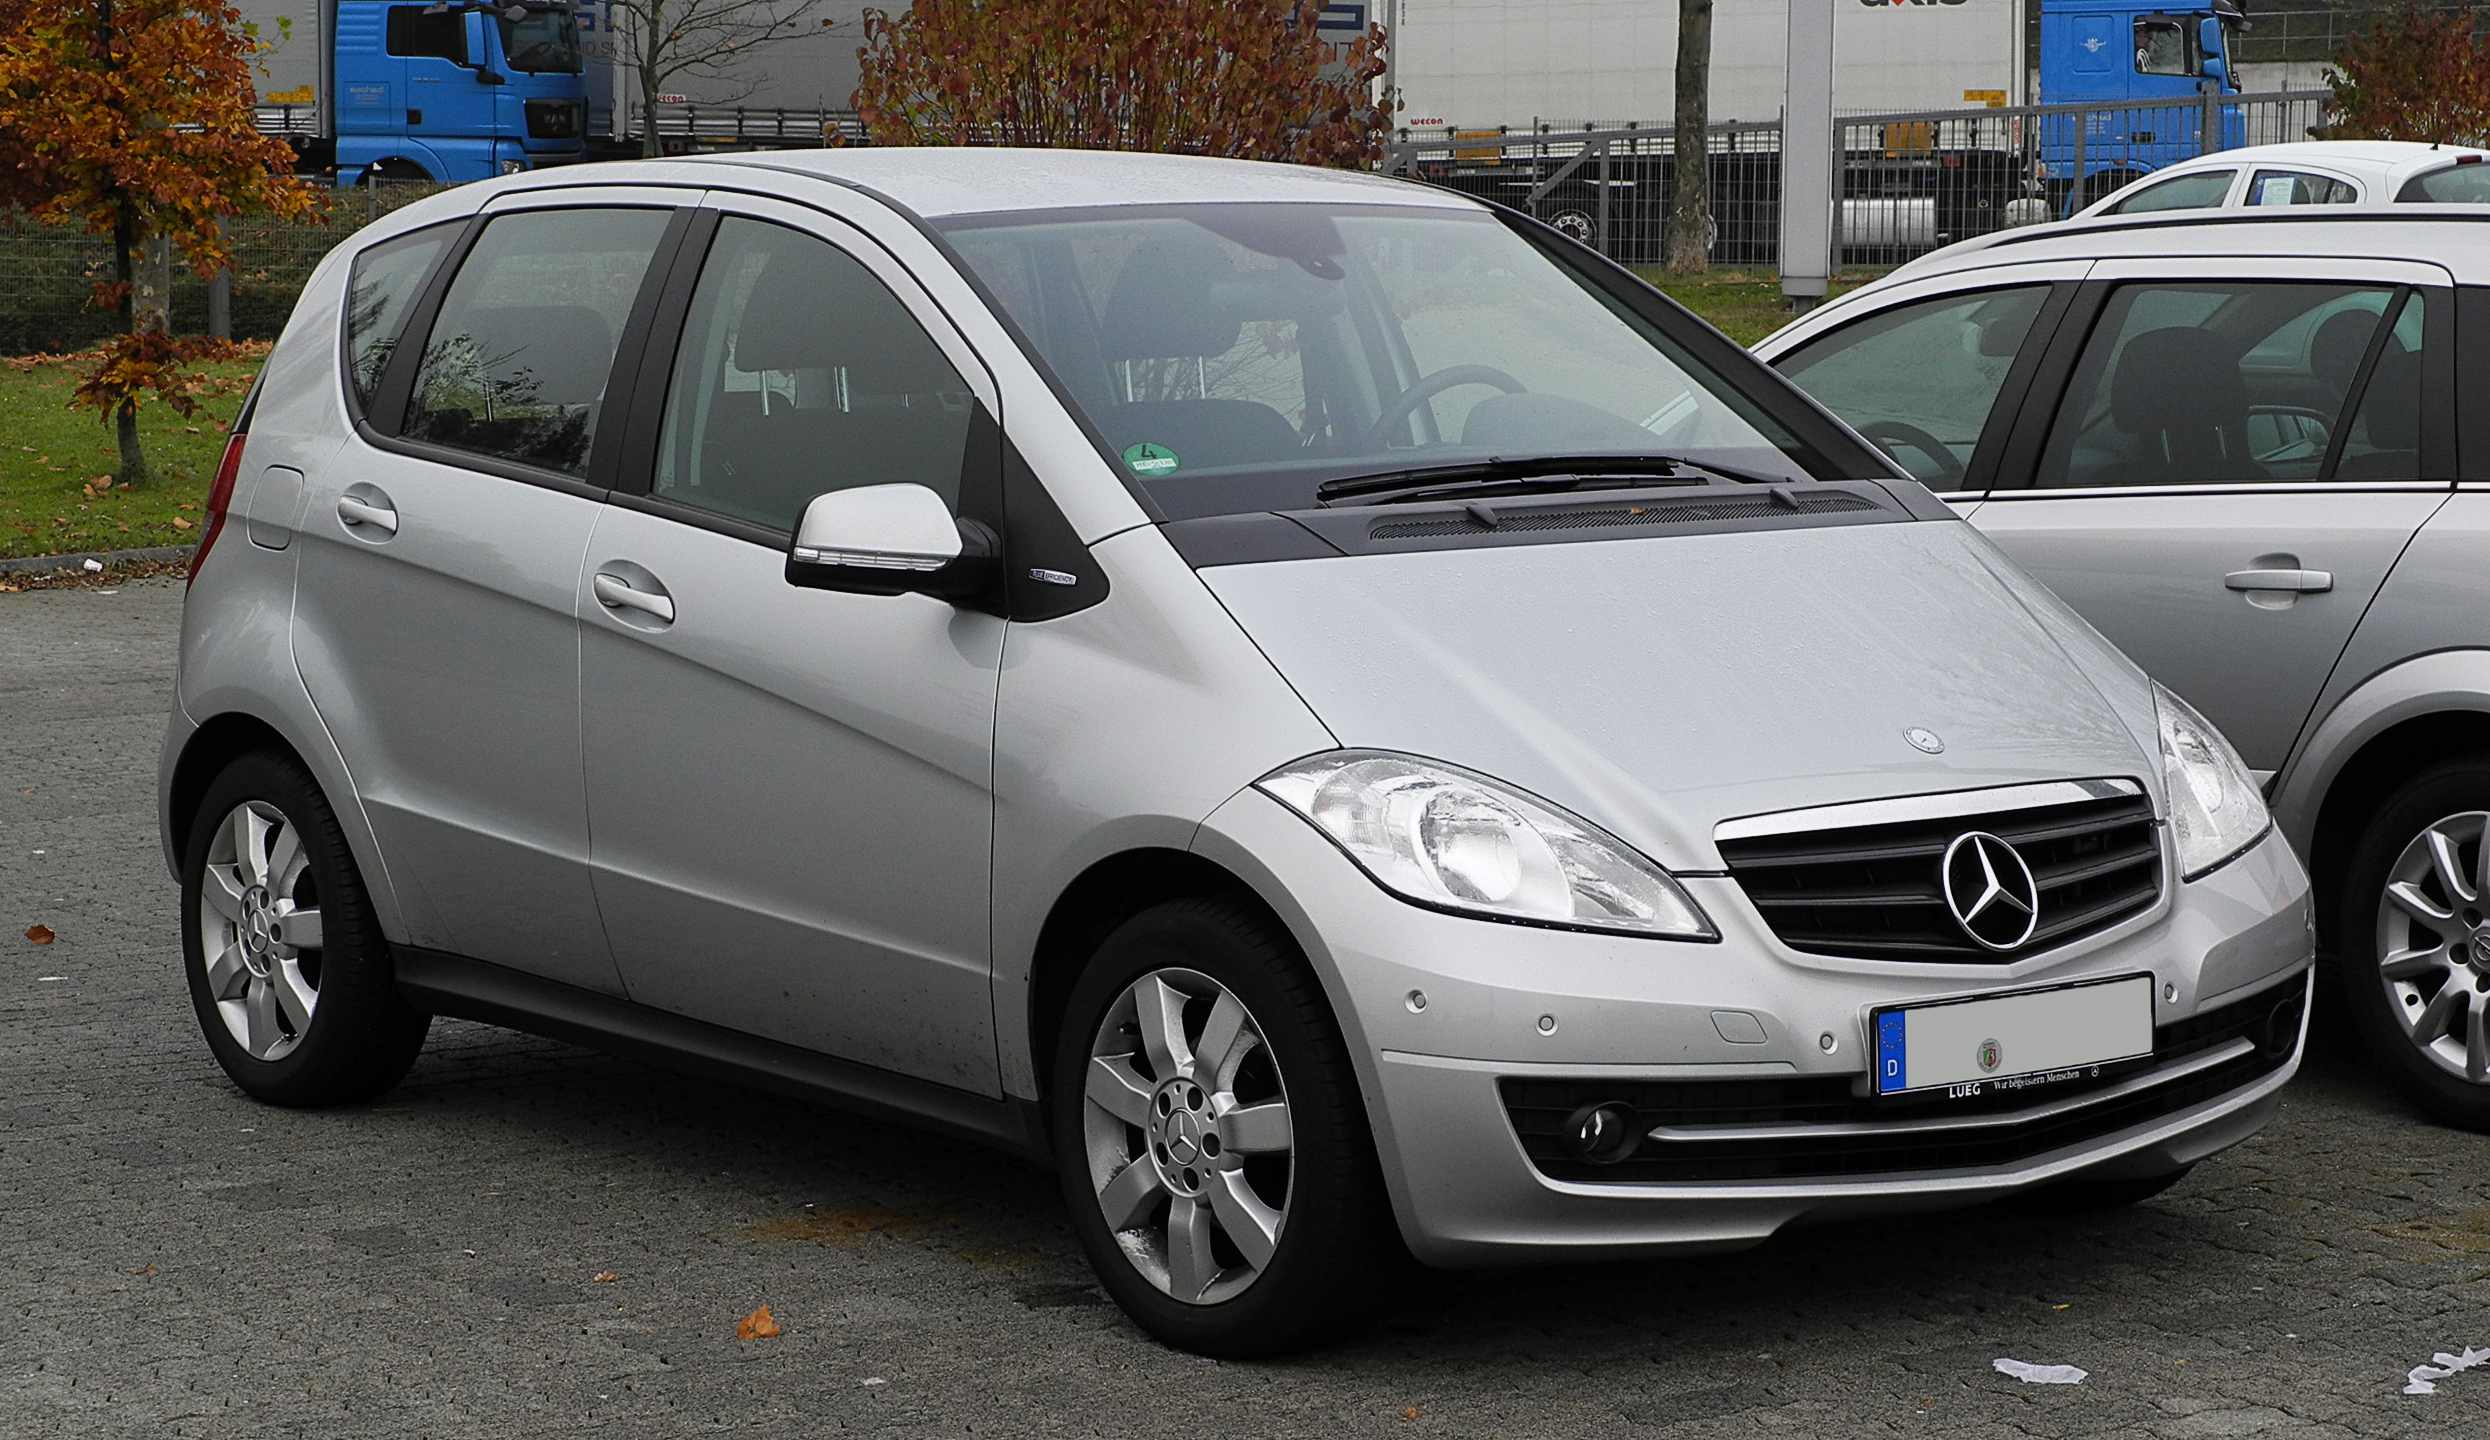 mercedes-benz a 160 blueefficiency-pic. 1